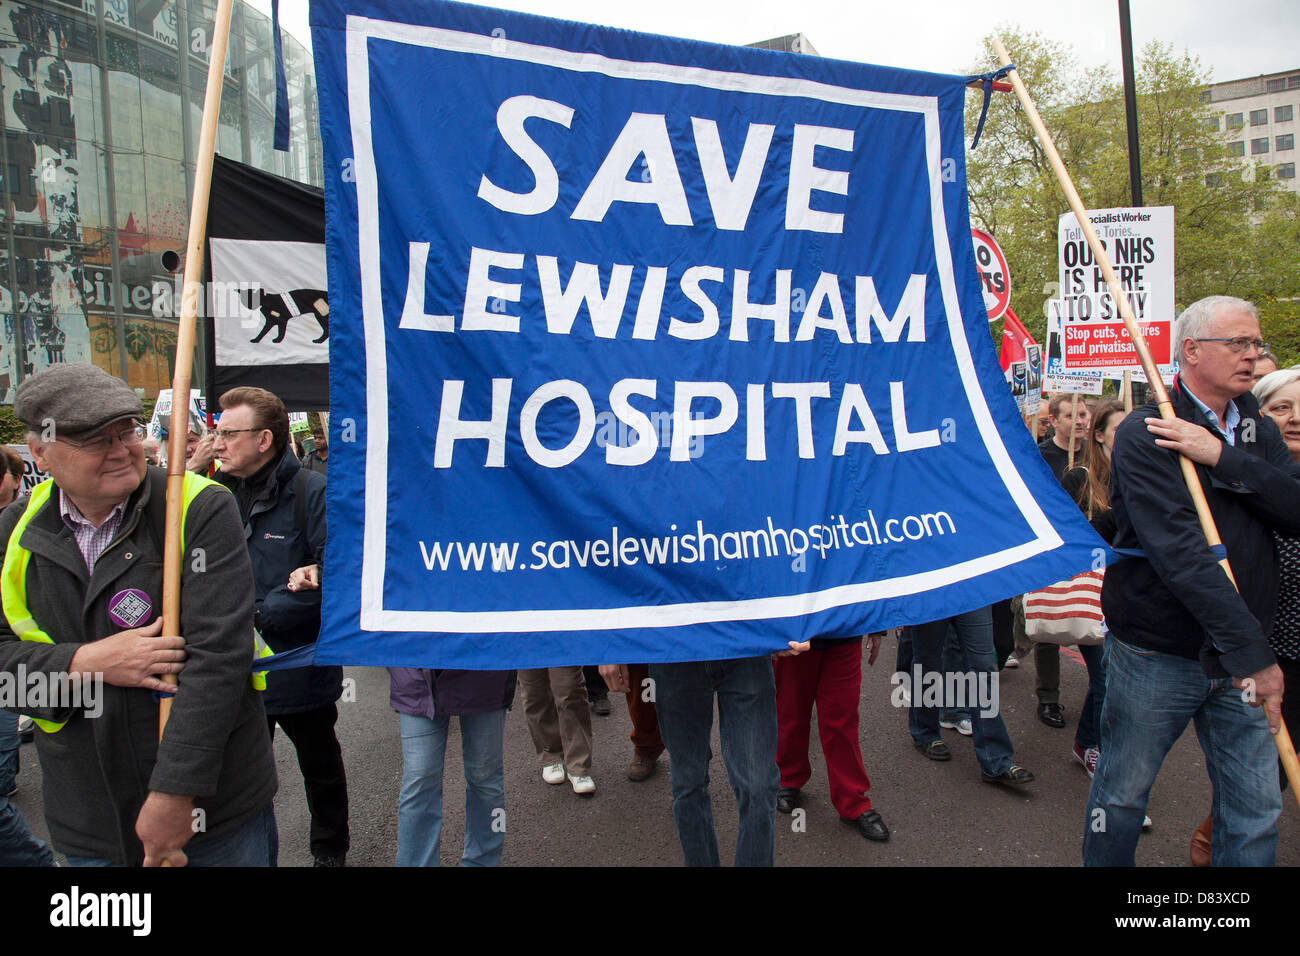 Protestors march in a demonstration against NHS reform and proposed funding cuts for services within the National - Stock Image